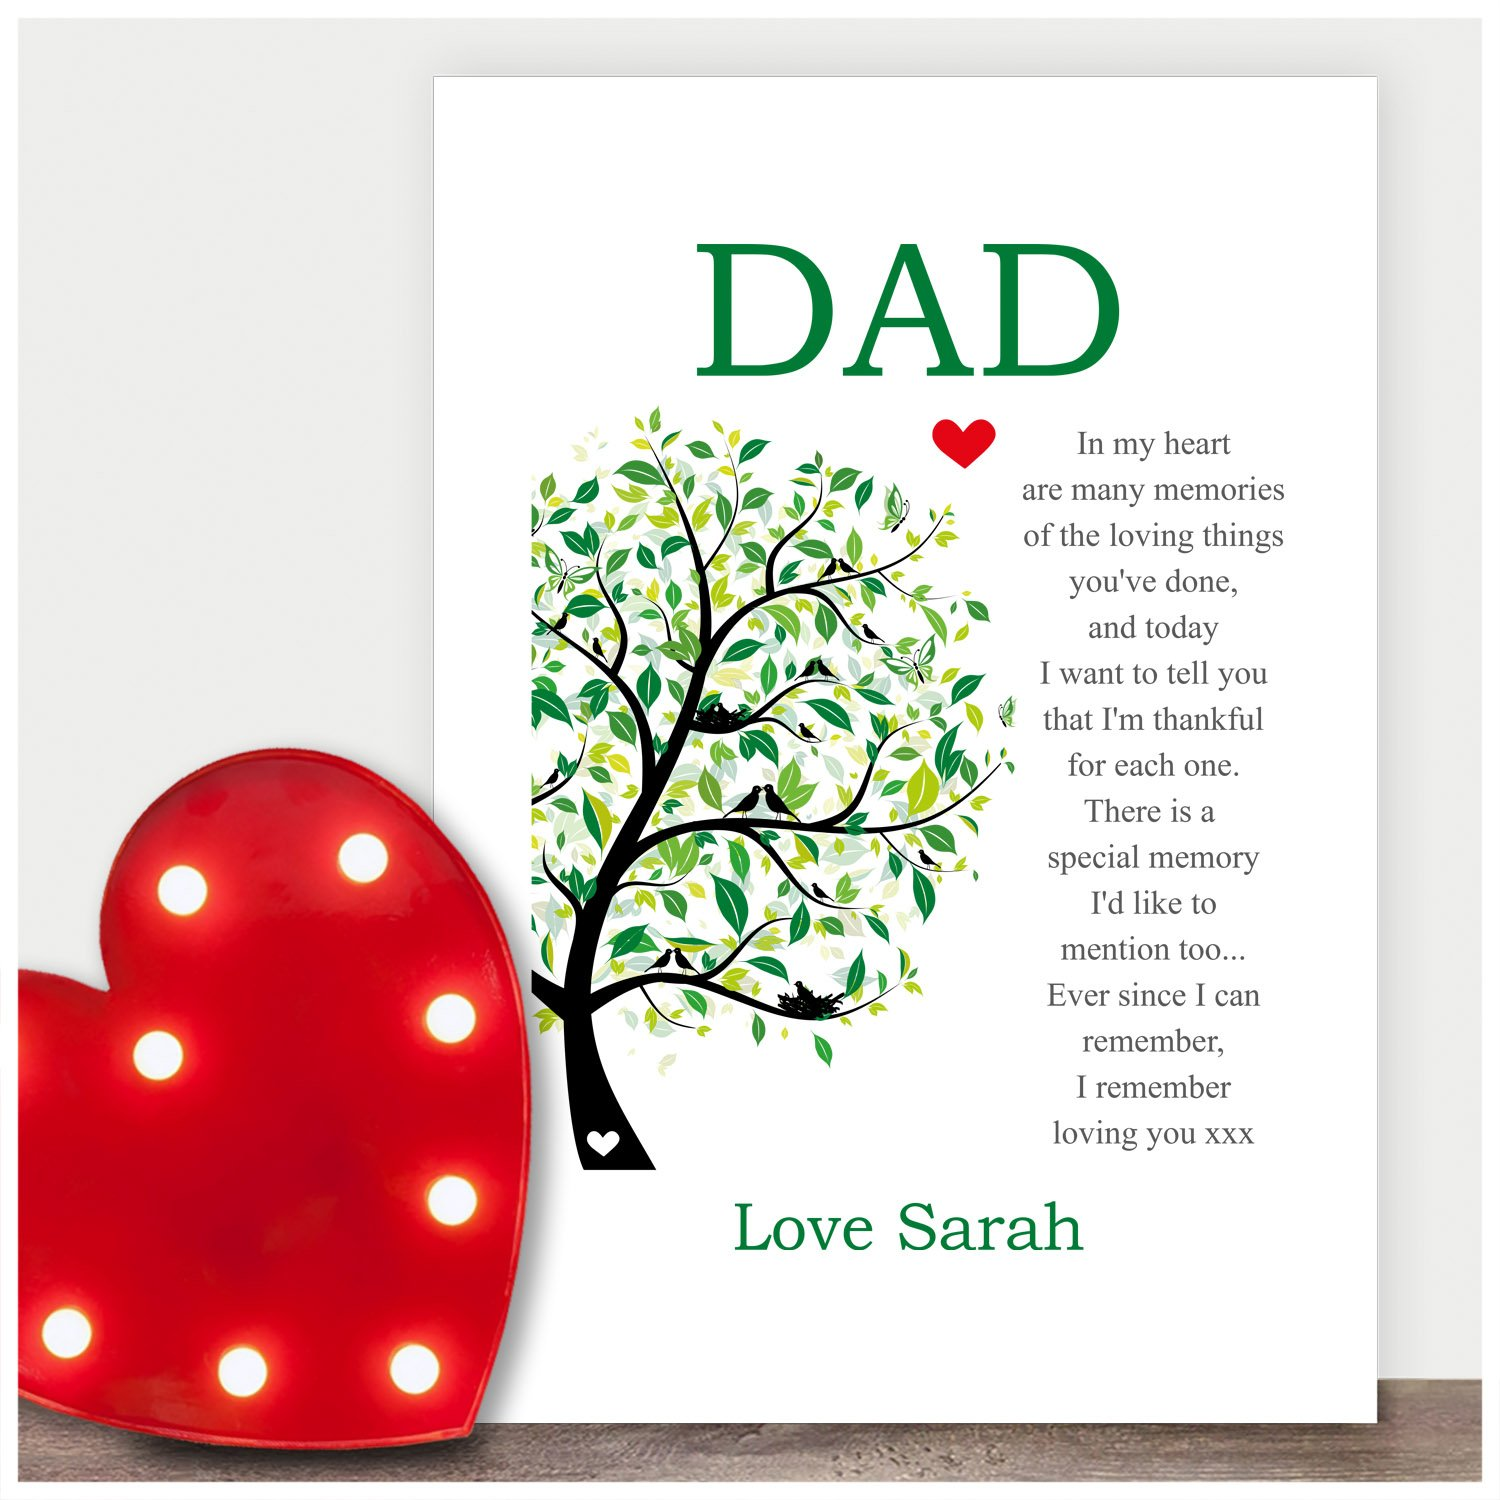 keepsake personalised poem dad birthday gifts daddy father grandad presents love personalised any recipient for birthdays christmas black or white